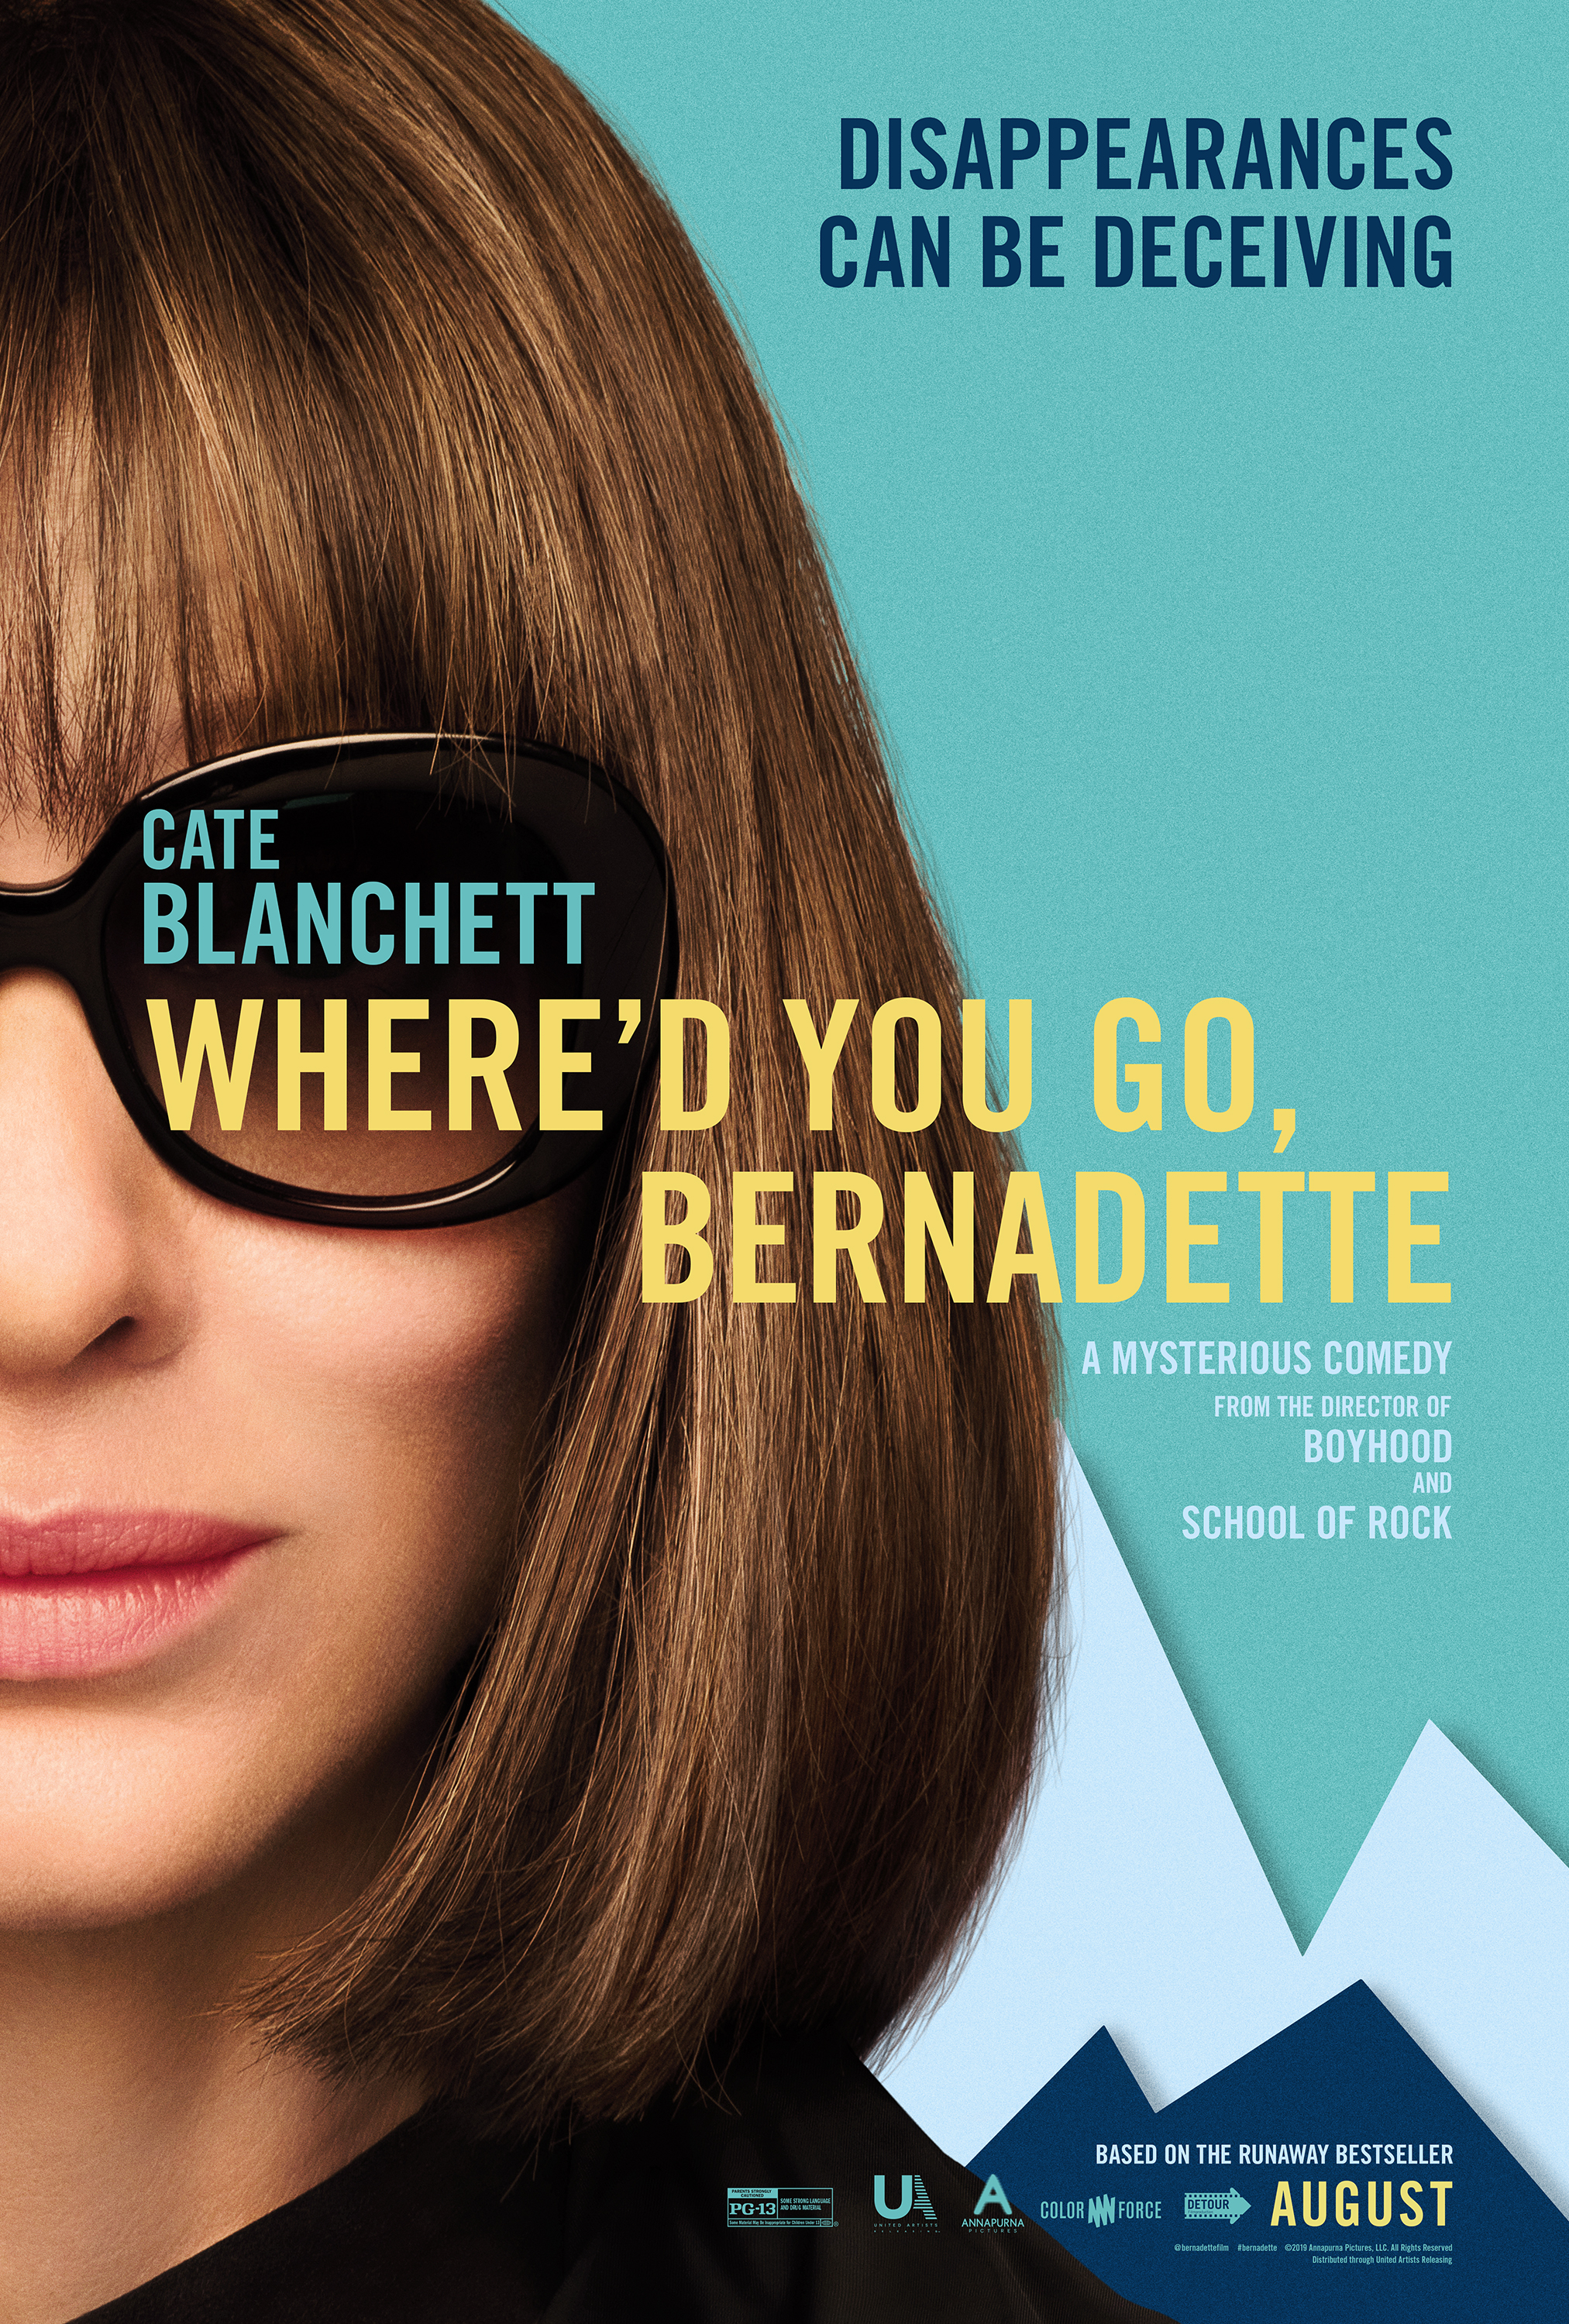 W A T C H:WHERE'D YOU GO, BERNADETTE?Bernadette is a woman who ostensibly has it all. Her family lives in a beautiful home perched atop Upper Queen Anne, and her only worries are the meticulous details concerning her daughter's esteemed elementary school education, and a throng of pervasive blackberry bushes overtaking her yard. It's worth noting that she's also an insomniac architect in a major rut, and hasn't designed anything in twenty years. When she suddenly disappears, her husband and daughter undertake a voyage to find her and solve the mystery of the whereabouts of Bernadette.Maria Sample penned the Seattle-based familial mystery that was a NYT bestseller. Now adapted for film, the film stars Cate Blanchett and was directed by Richard Linklater (known for films like Before Sunrise, Waking Life, & Boyhood) and opens in Seattle theaters on August 15. While some have derided the book as a shallow depiction of privilege, others find the character of Bernadette beguiling and complex in a refreshing way. It was the character's complexity that drew Richard Linklater to become involved in the project. A recent NPR interview with Linklater and Blanchett posits that the story serves as a cautionary tale about putting creativity aside after having kids. Check out the interview with Linklater and Blanchett here. -